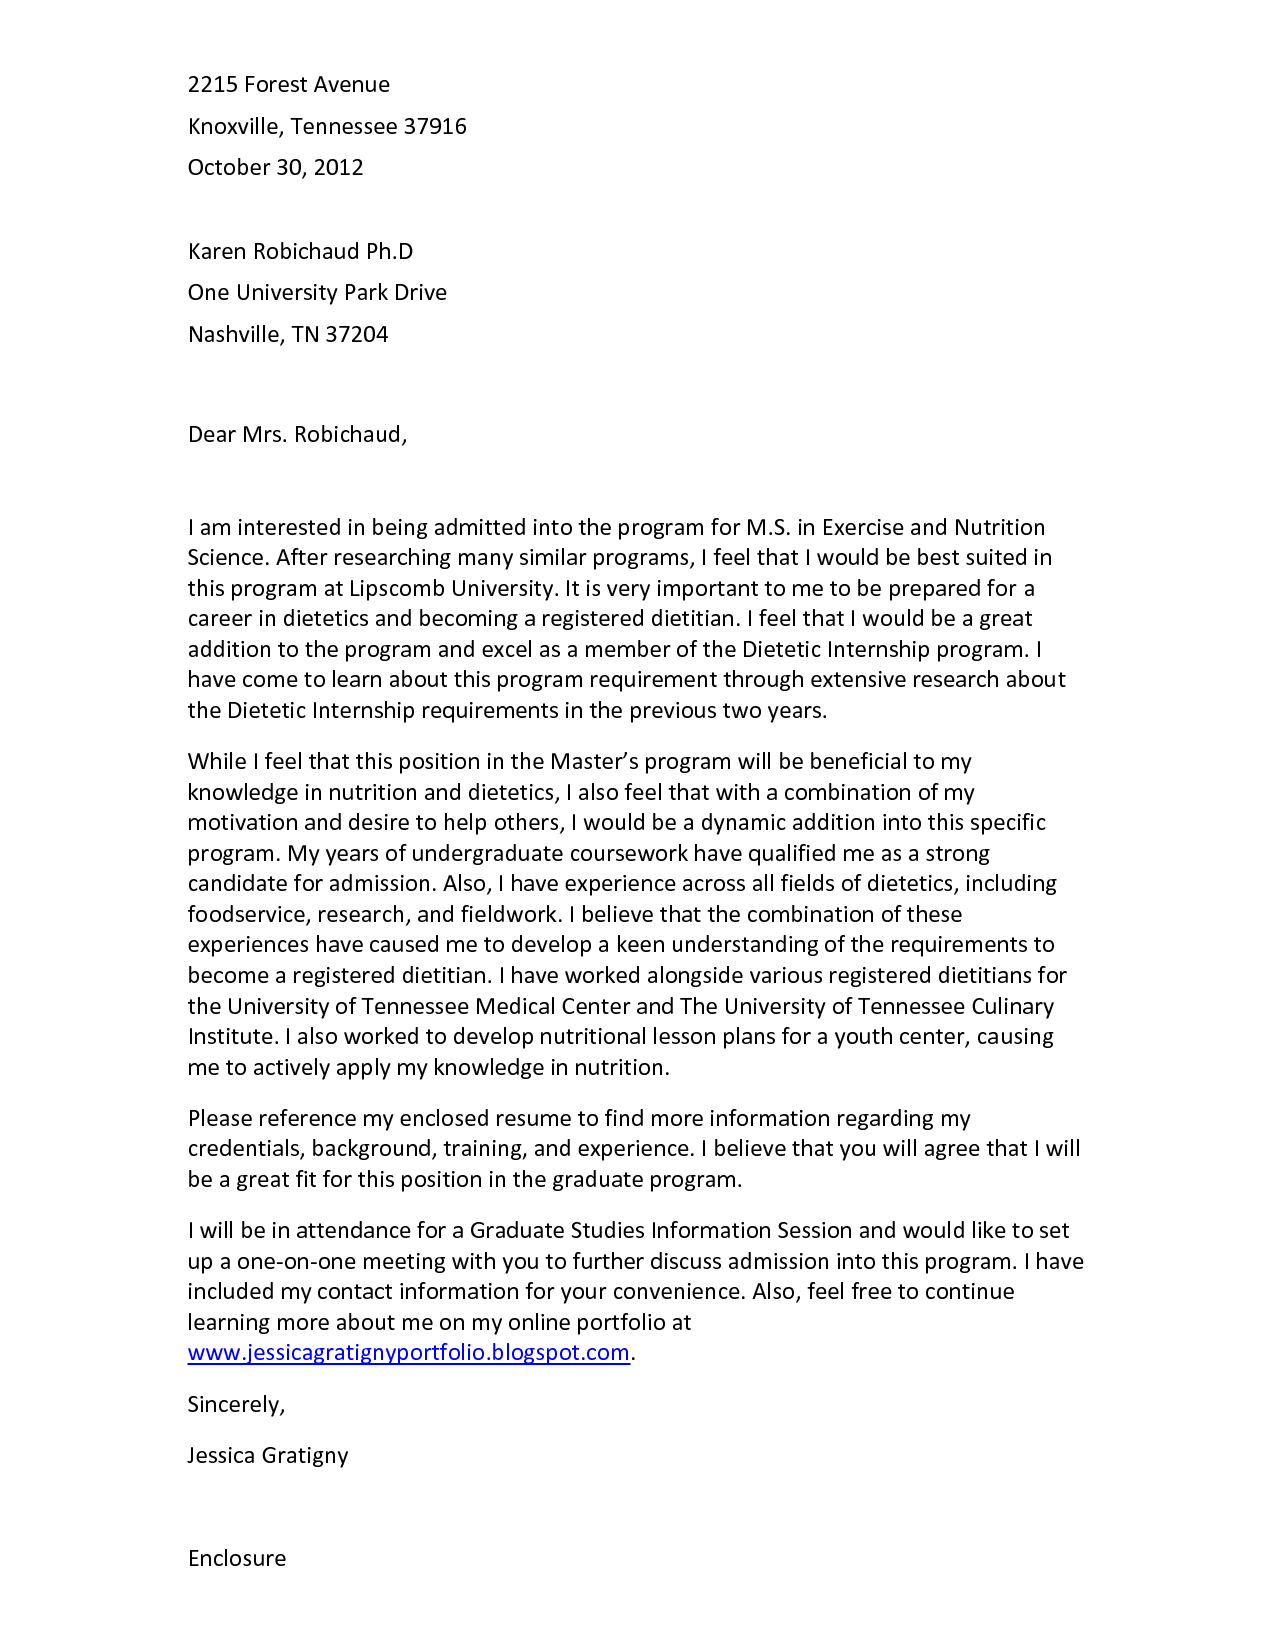 how to write a motivational letter for university admission